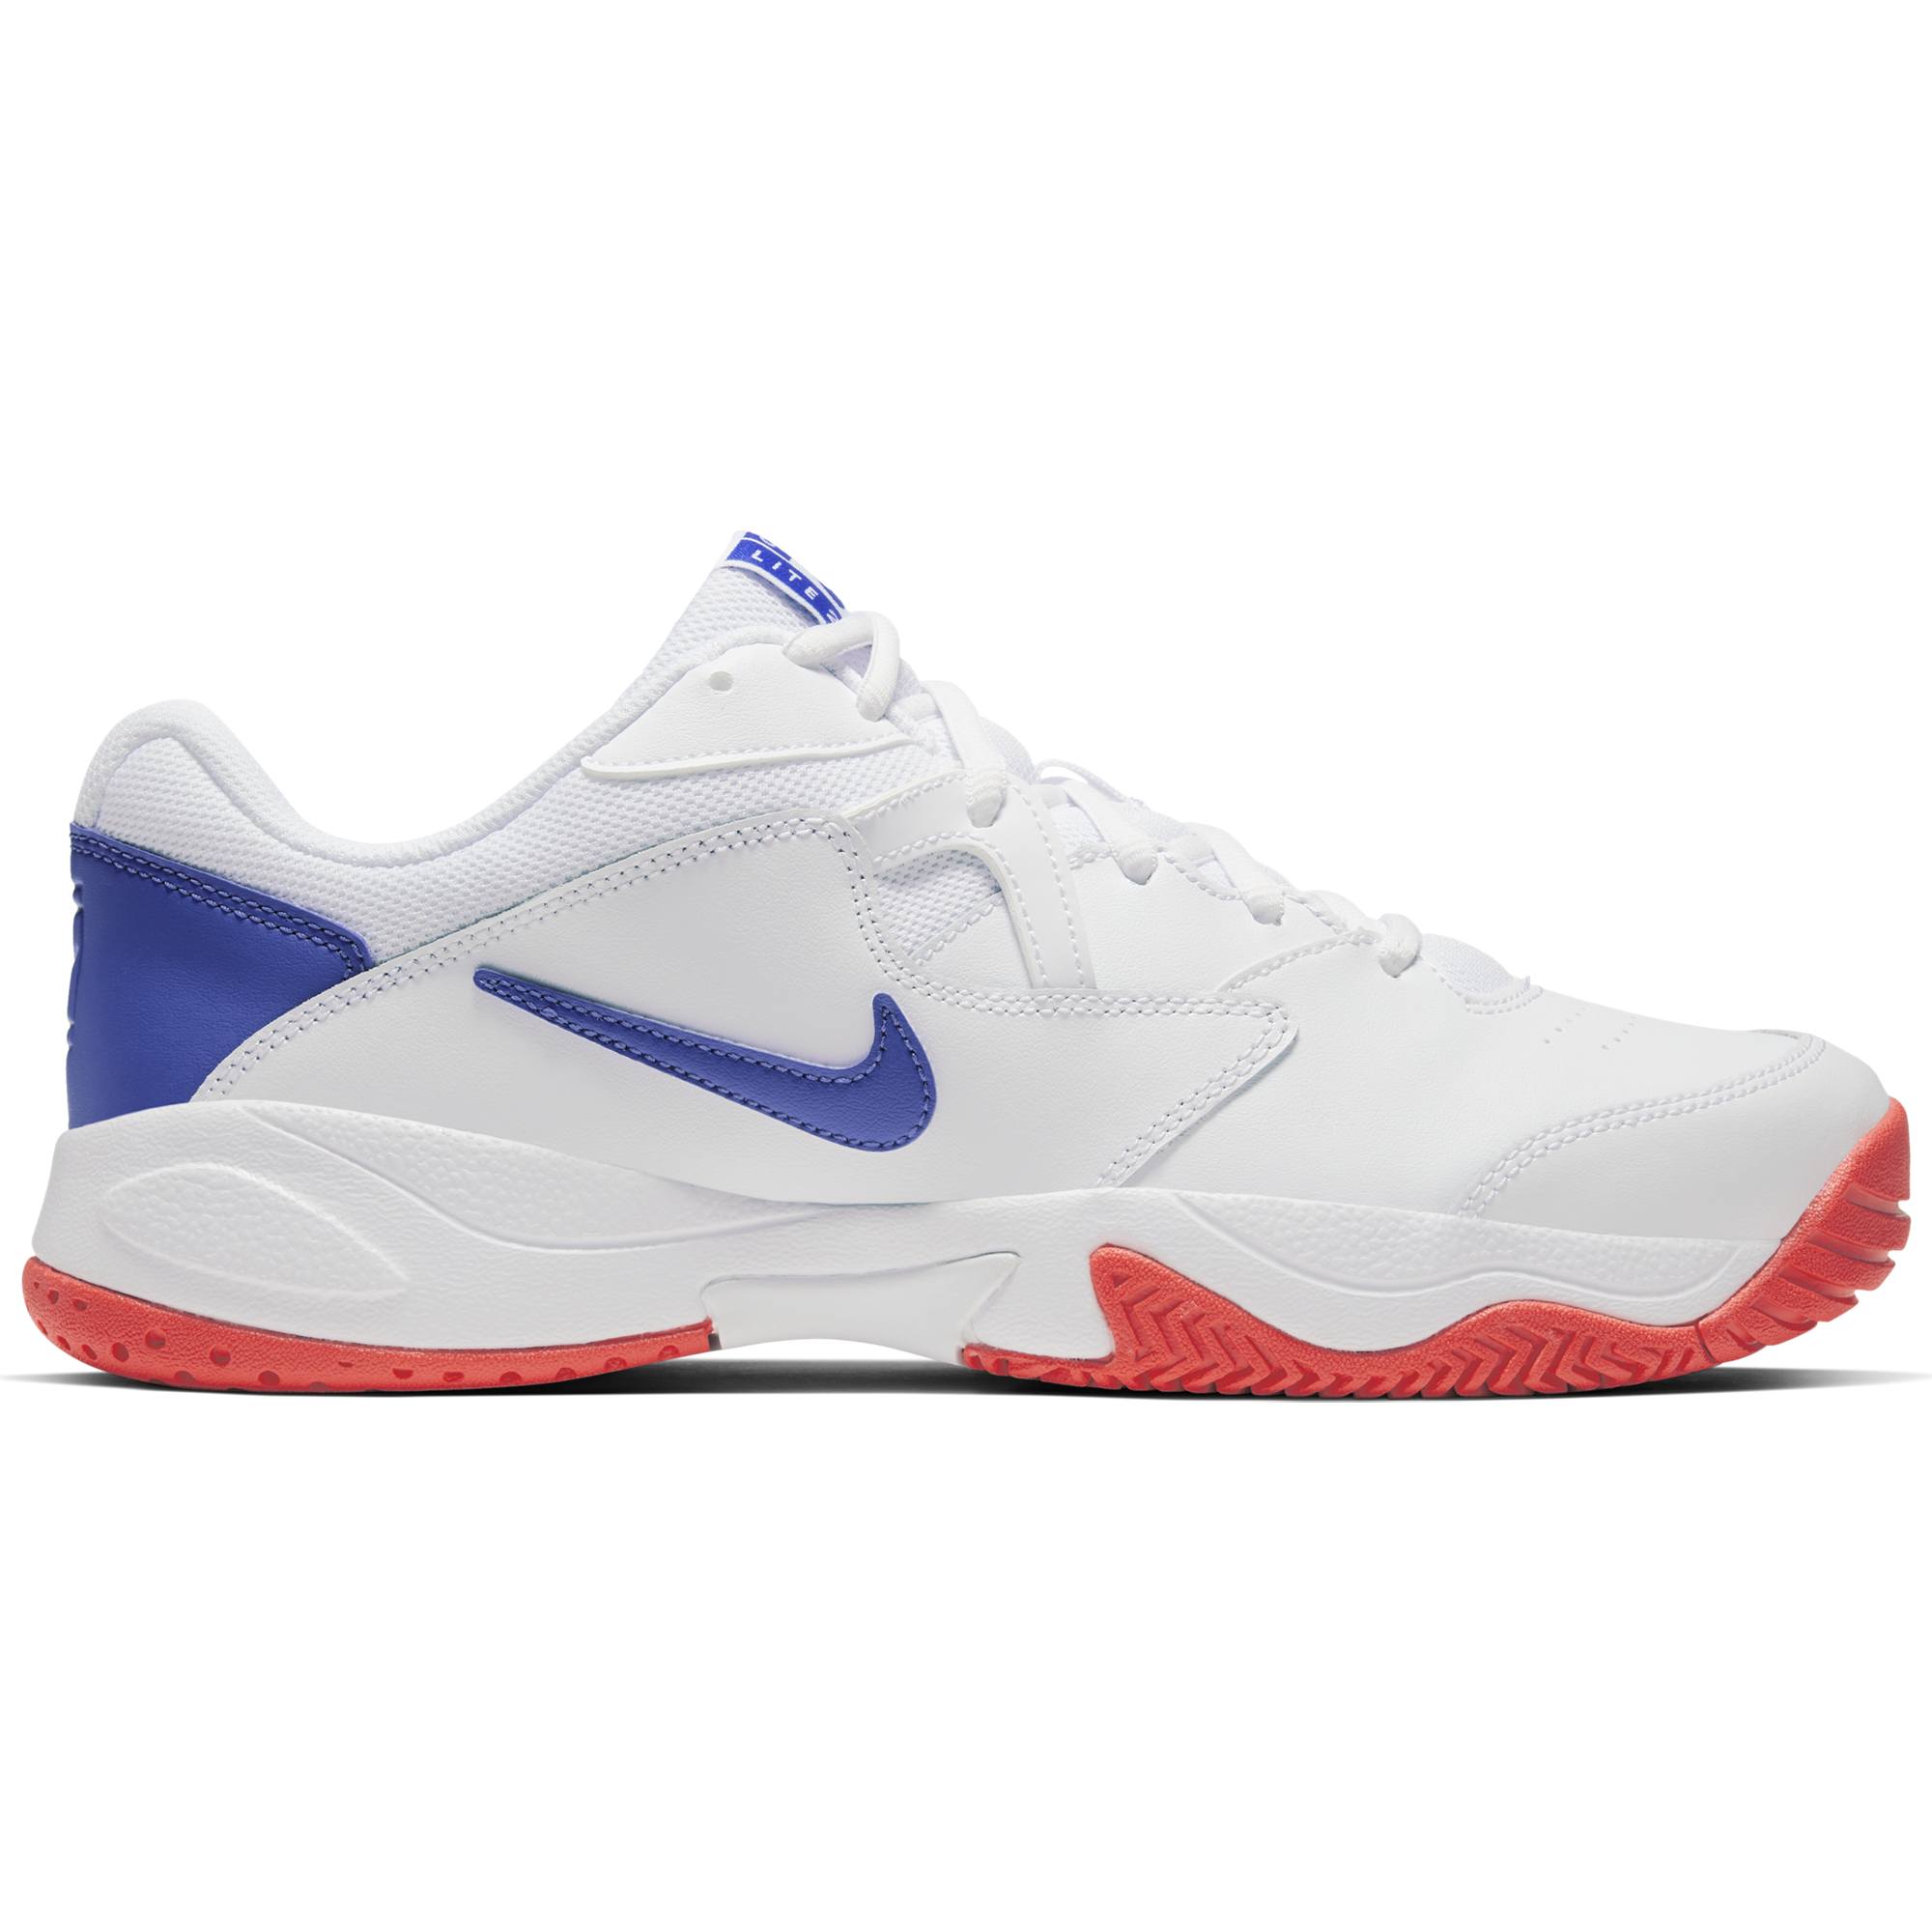 continuar Insatisfactorio Dar derechos  NikeCourt Lite 2 Men's Hard Court Tennis Shoe - White/Royal | PGA TOUR  Superstore